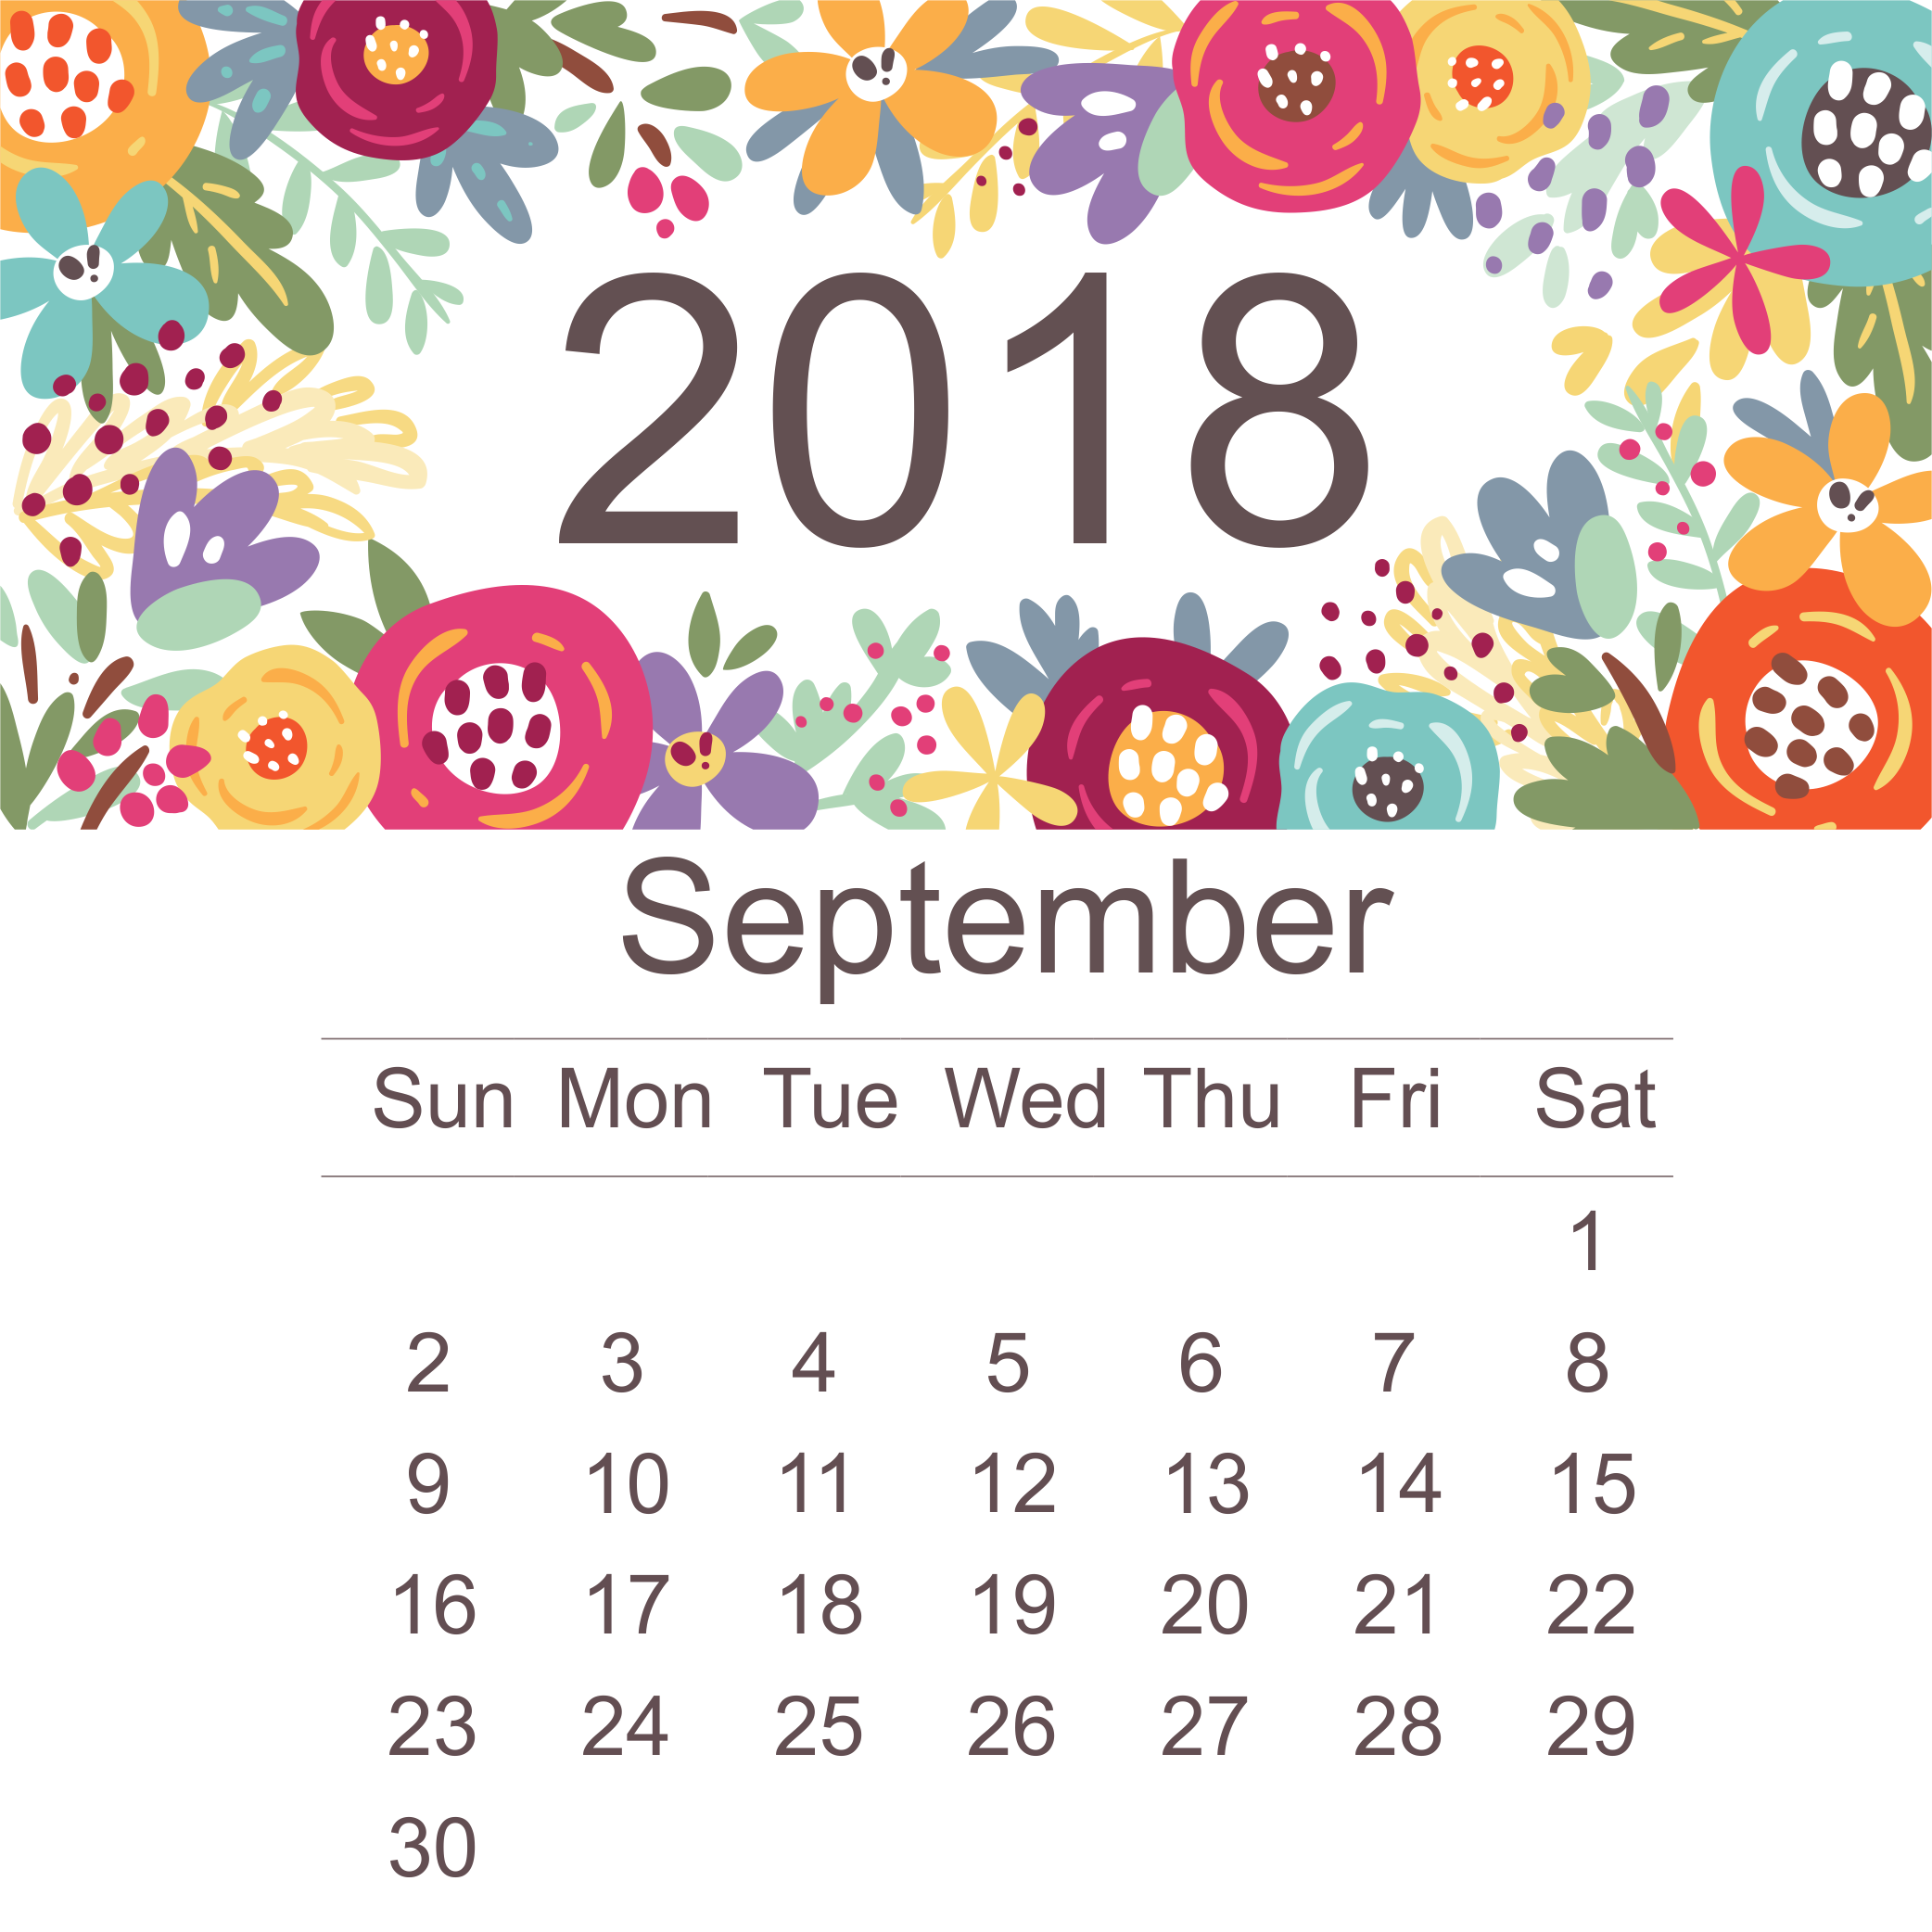 2018 September Calendar Wallpaper